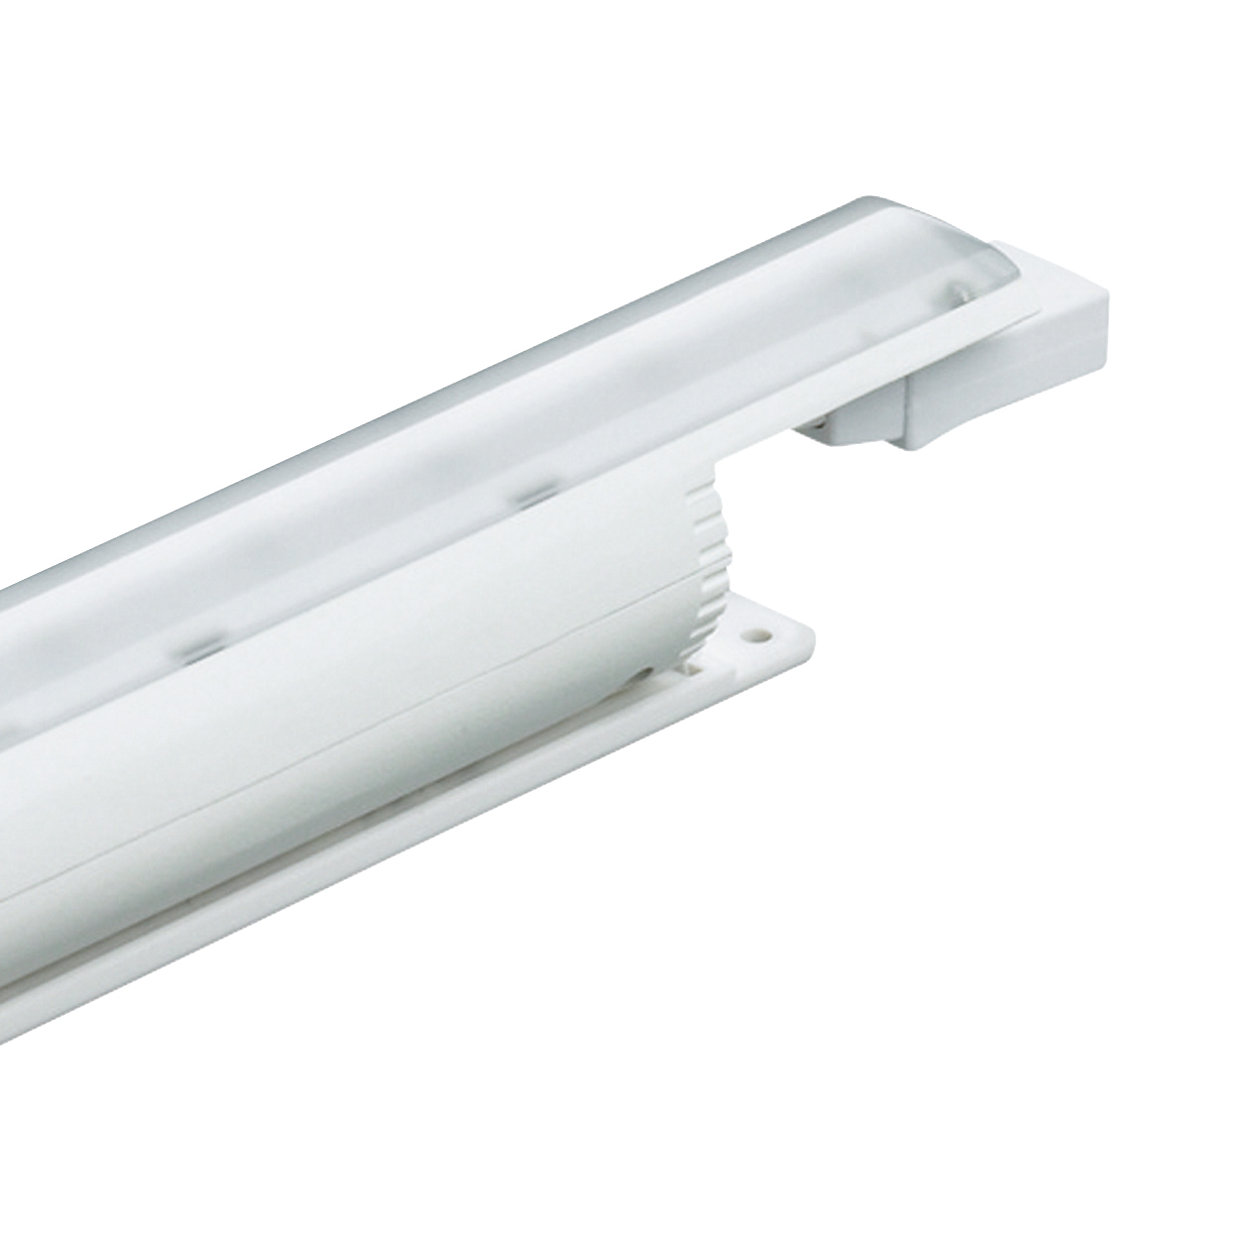 eColour Cove MX Powercore - Premium interior linear LED cove and accent fixture with solid colour light